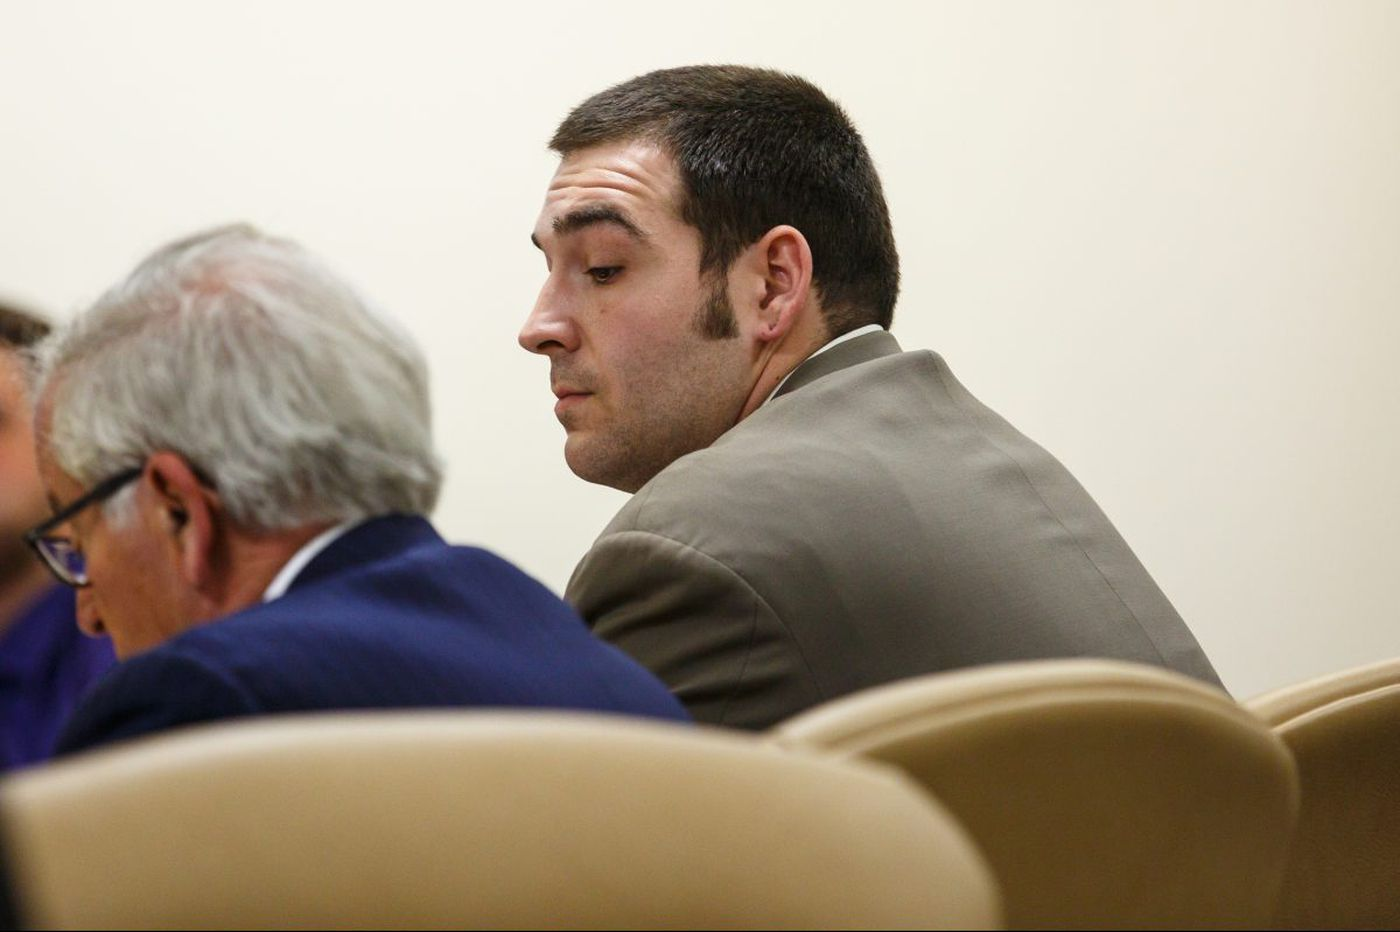 New Jersey man on trial in bow-and-arrow murder case